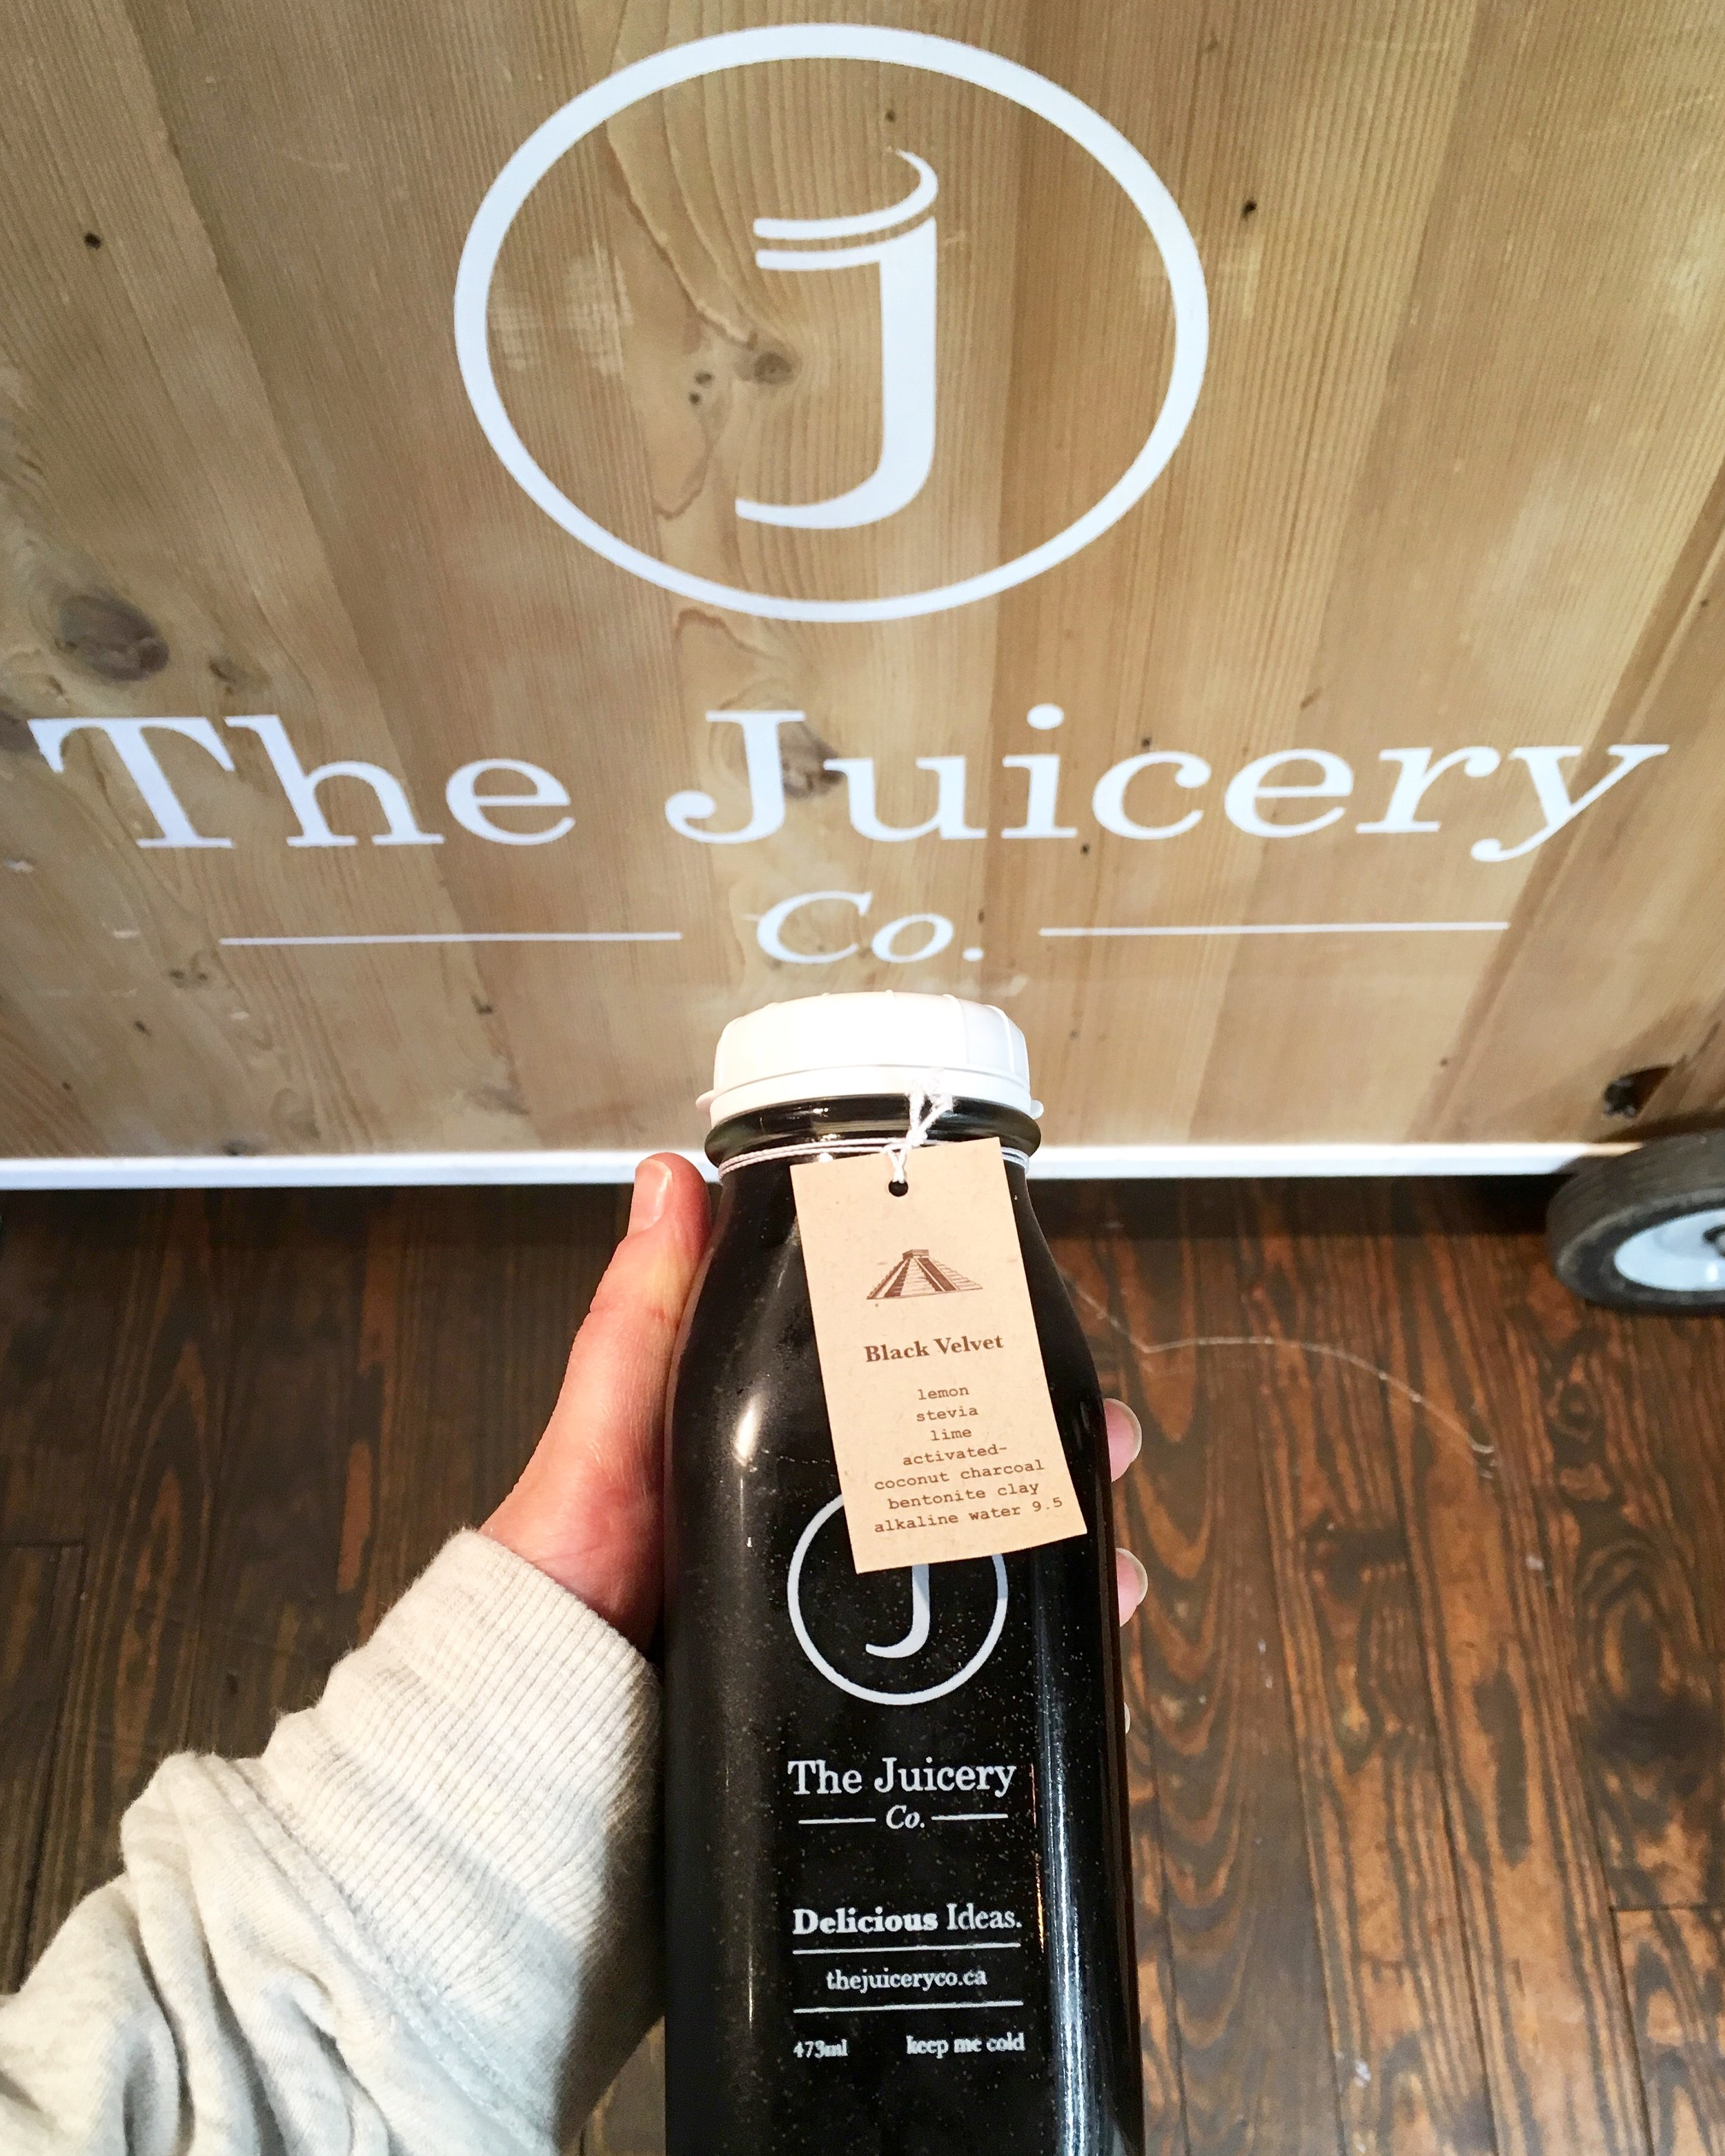 the juicery co - Though their speciality is cold-pressed, handmade, organic juice they have been offering more and more food options since the opening of their new location on Main Street. Look for their homemade salad bowls, acai bowls, smoothies, and raw treats!Check out their extravagant latte menu at Main Street, their rose latte is insane. Get it. You'll thank me later.They are also the only juicery company in Vancouver that uses produce from their very own organic farm in Pemberton! I think that's as local and sustainable as you can get!Some of my favourite juices include Black Velvet (featured), Earth Beauty, and the Greenist!They also have locations in Edgemont village and lower Lonsdale.Check them out herePhoto: Black Velvet at Lonsdale.